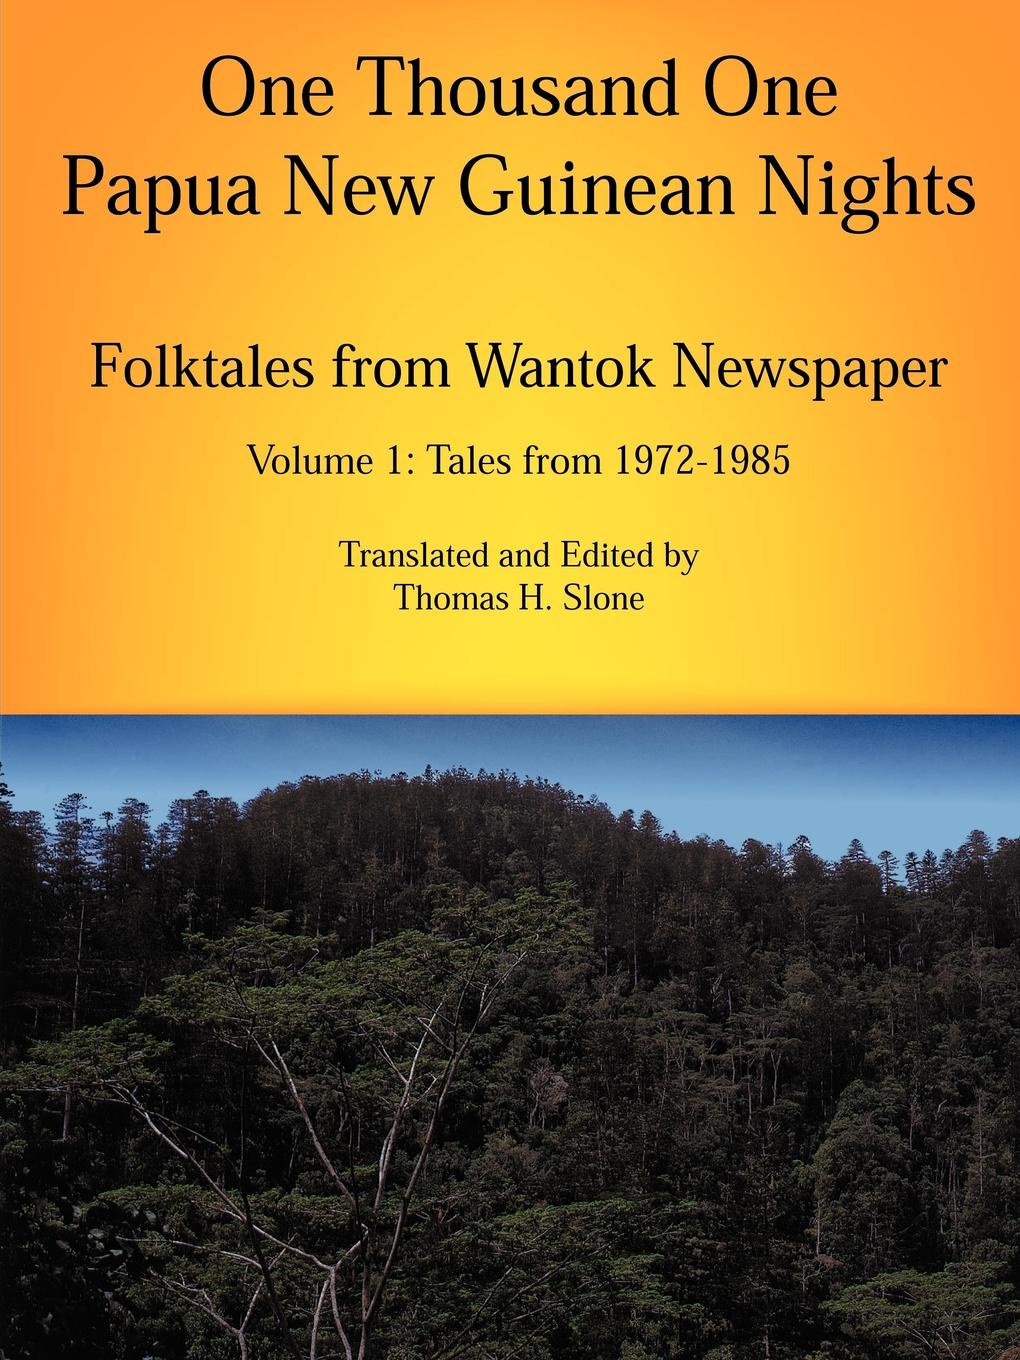 Thomas H. Slone One Thousand One Papua New Guinean Nights. Folktales from Wantok Newspapers: Volume 1 Tales from 1972-1985 al capp s complete shmoo volume 1 the comic books